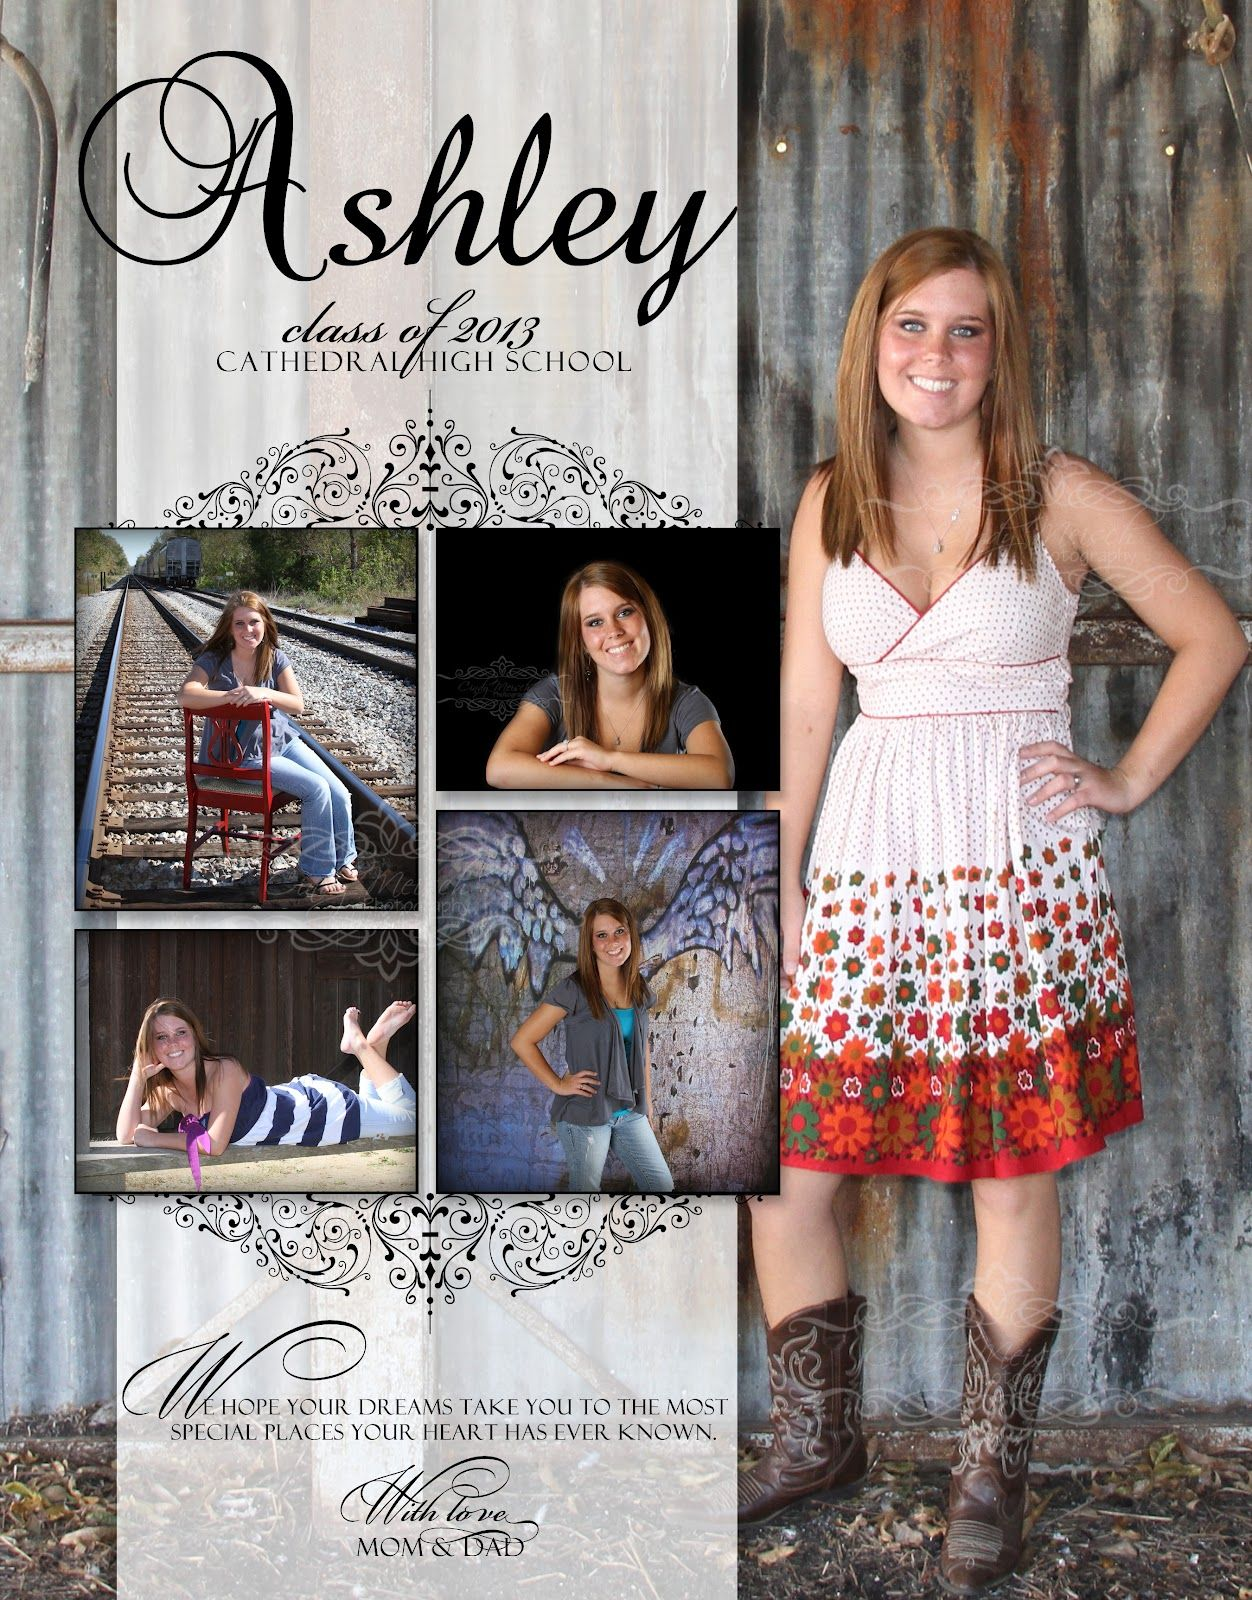 Cindy meisch photography high school senior portraits memphis area photographer yearbook for Senior ads ideas